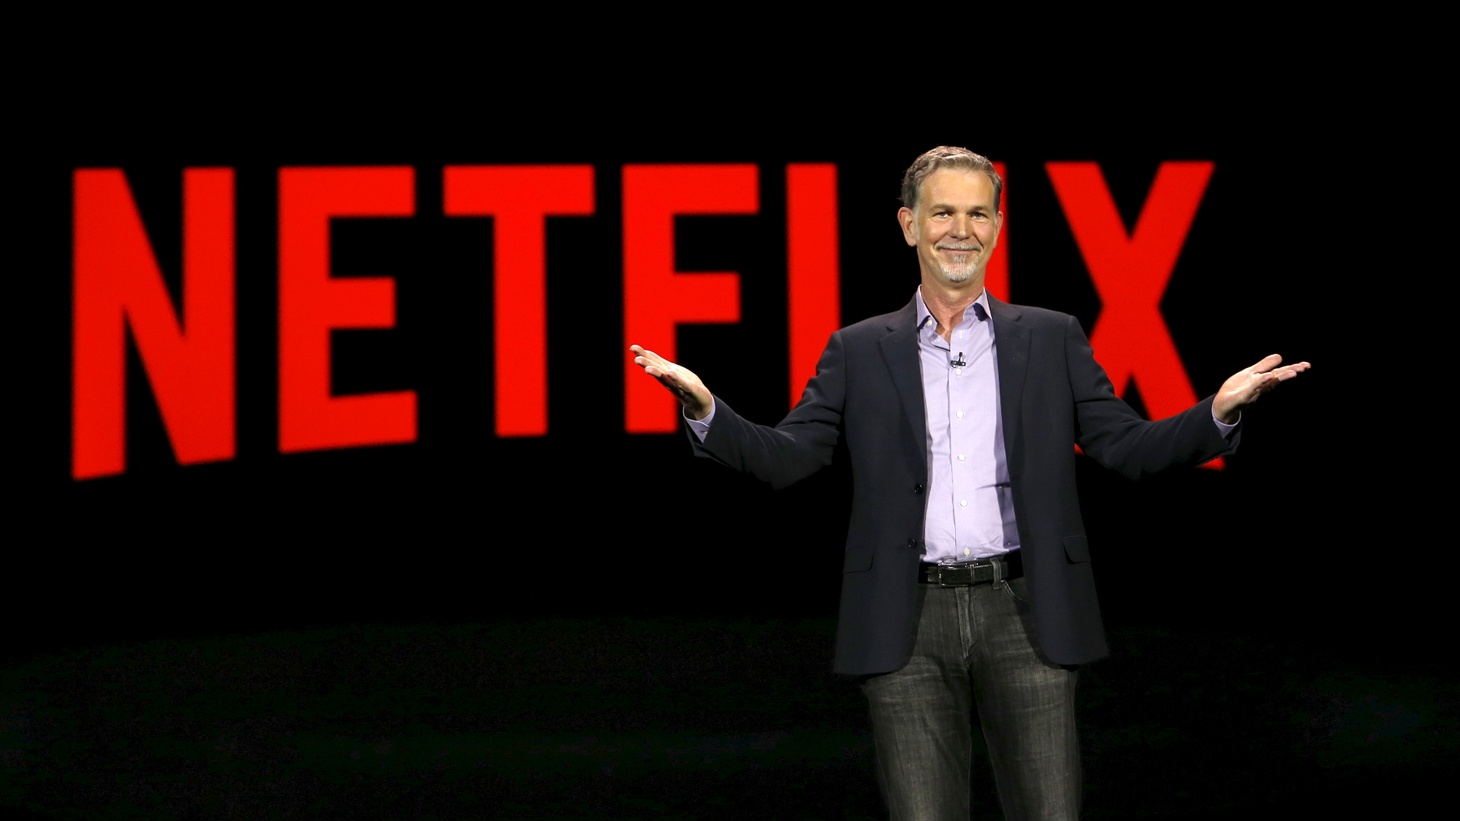 Reed Hastings, co-founder and CEO of Netflix, delivers a keynote address at the 2016 CES trade show in Las Vegas, Nevada, January 6, 2016.